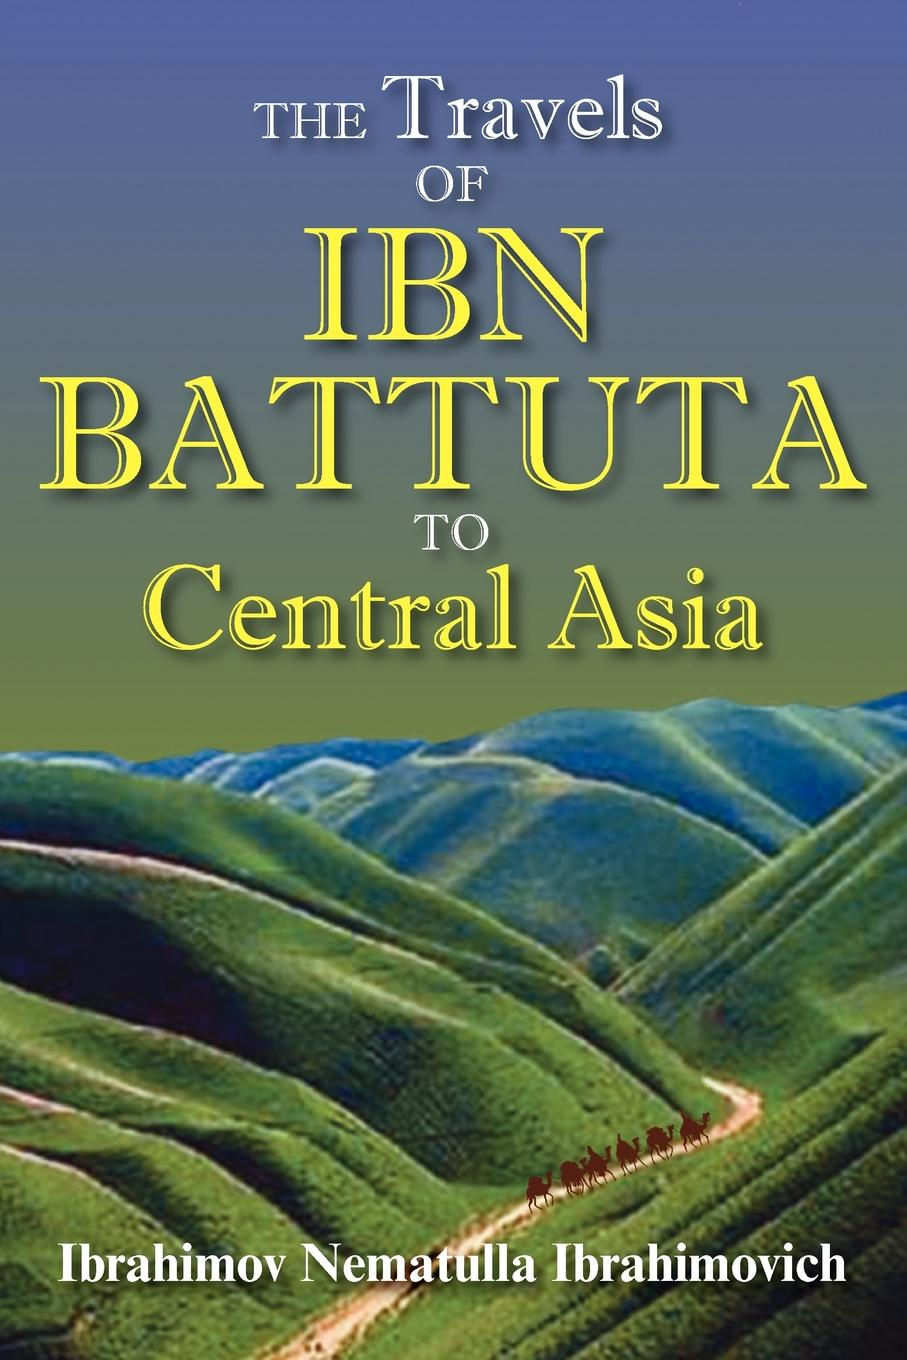 Ibn Batuta, 1304-1377 Ibn Batuta The Travels of Ibn Battuta to Central Asia